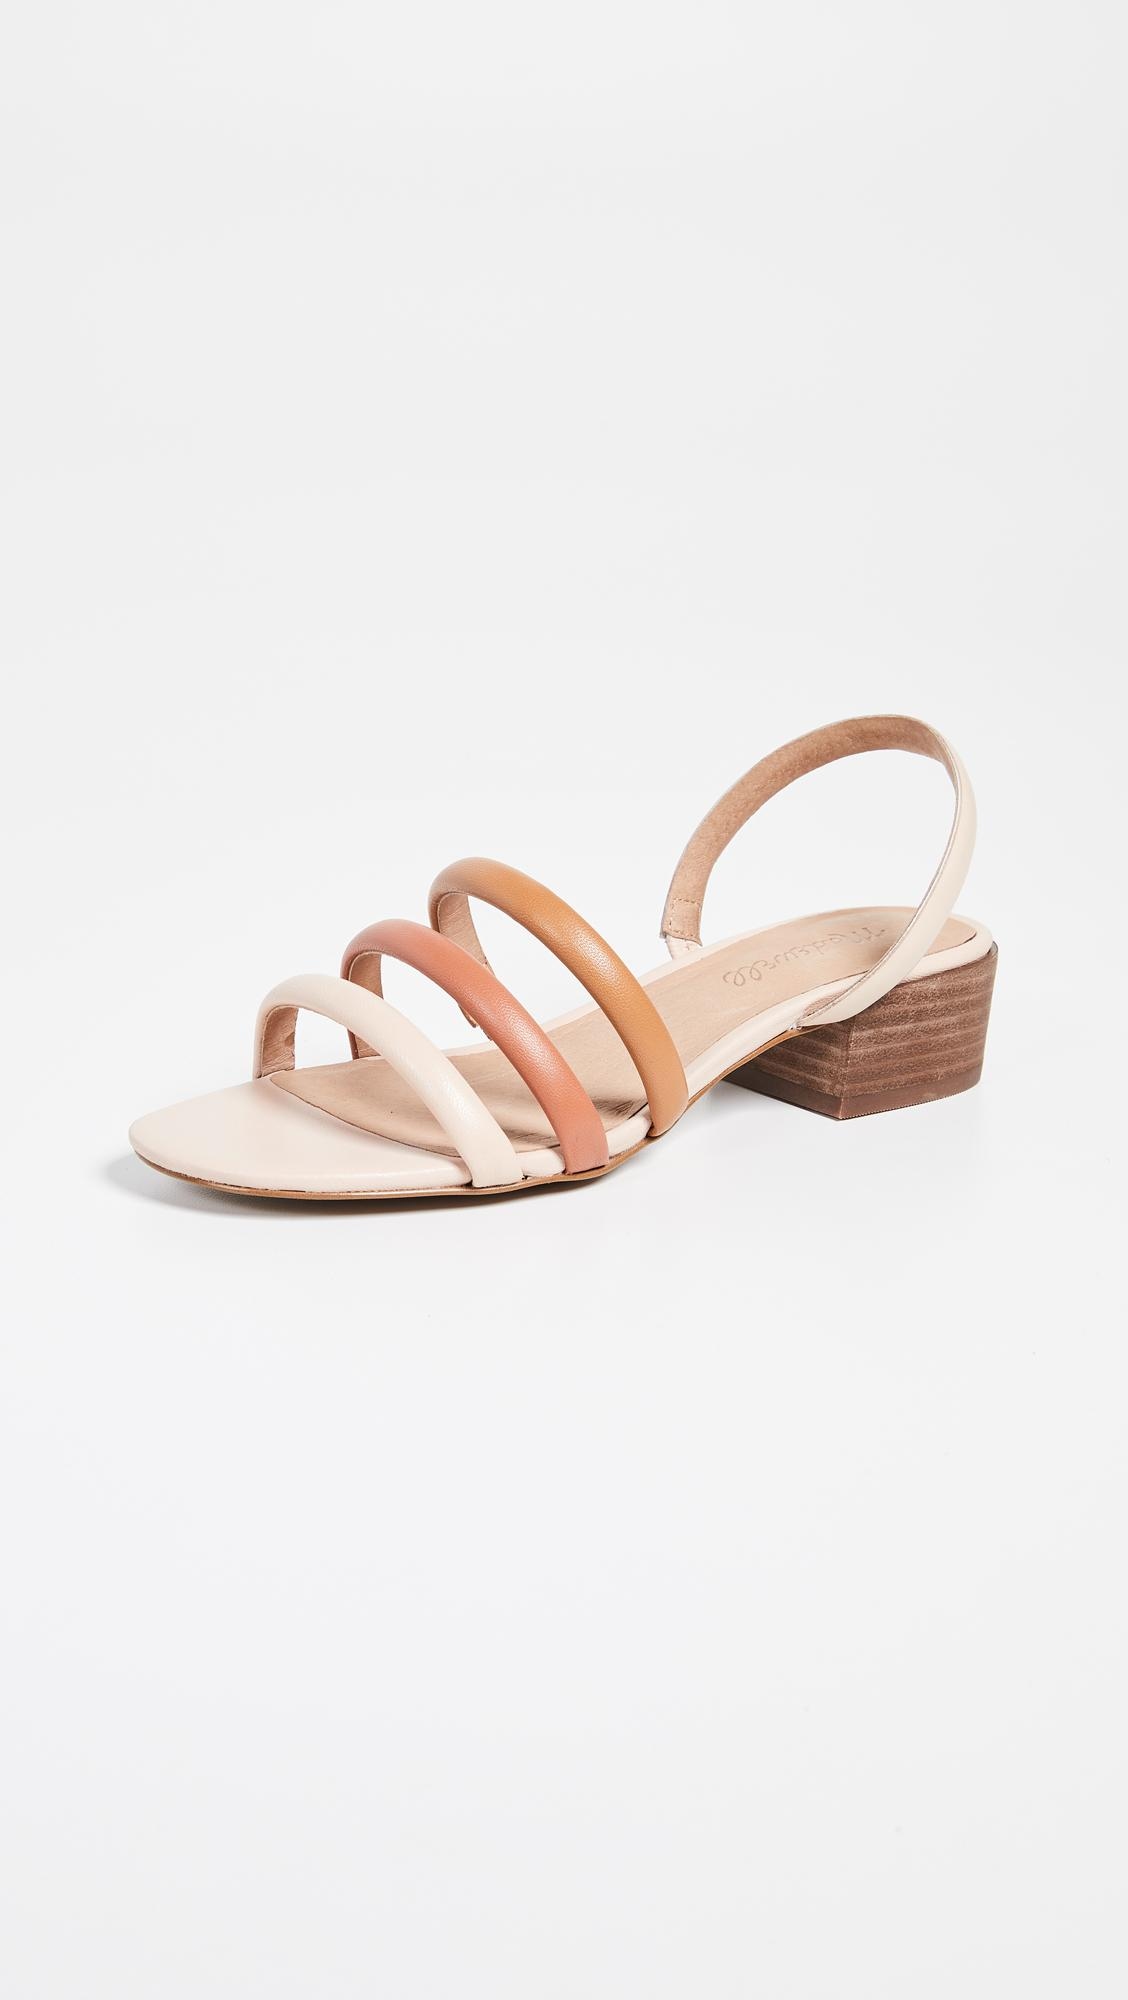 51a3326b164 Madewell. Women s The Addie Slingback Sandals